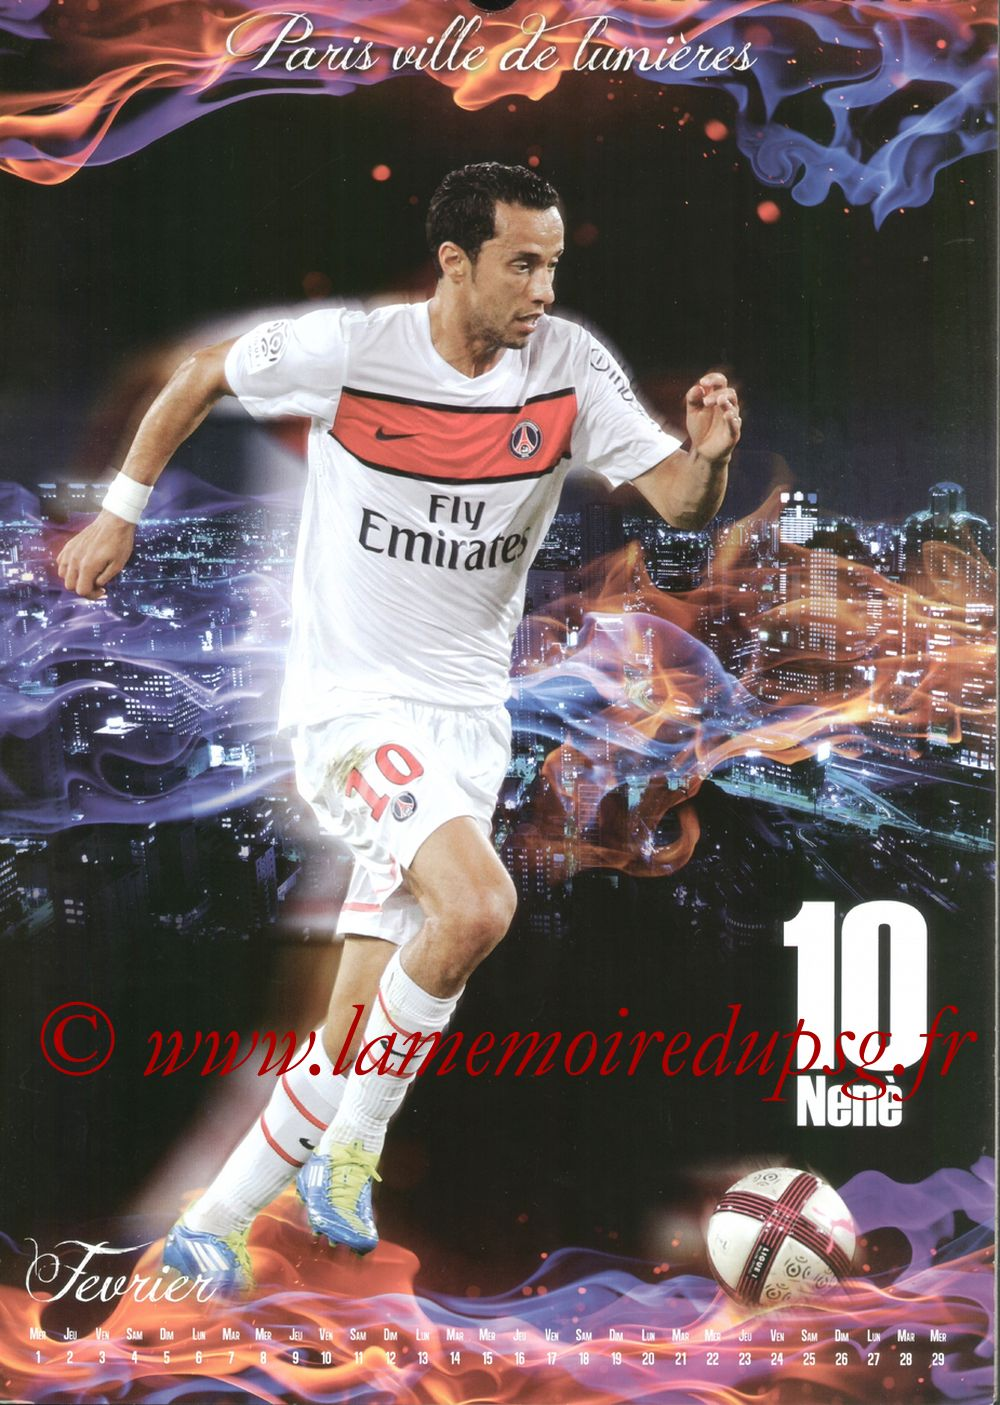 Calendrier PSG 2012bis - Page 02 - NENE